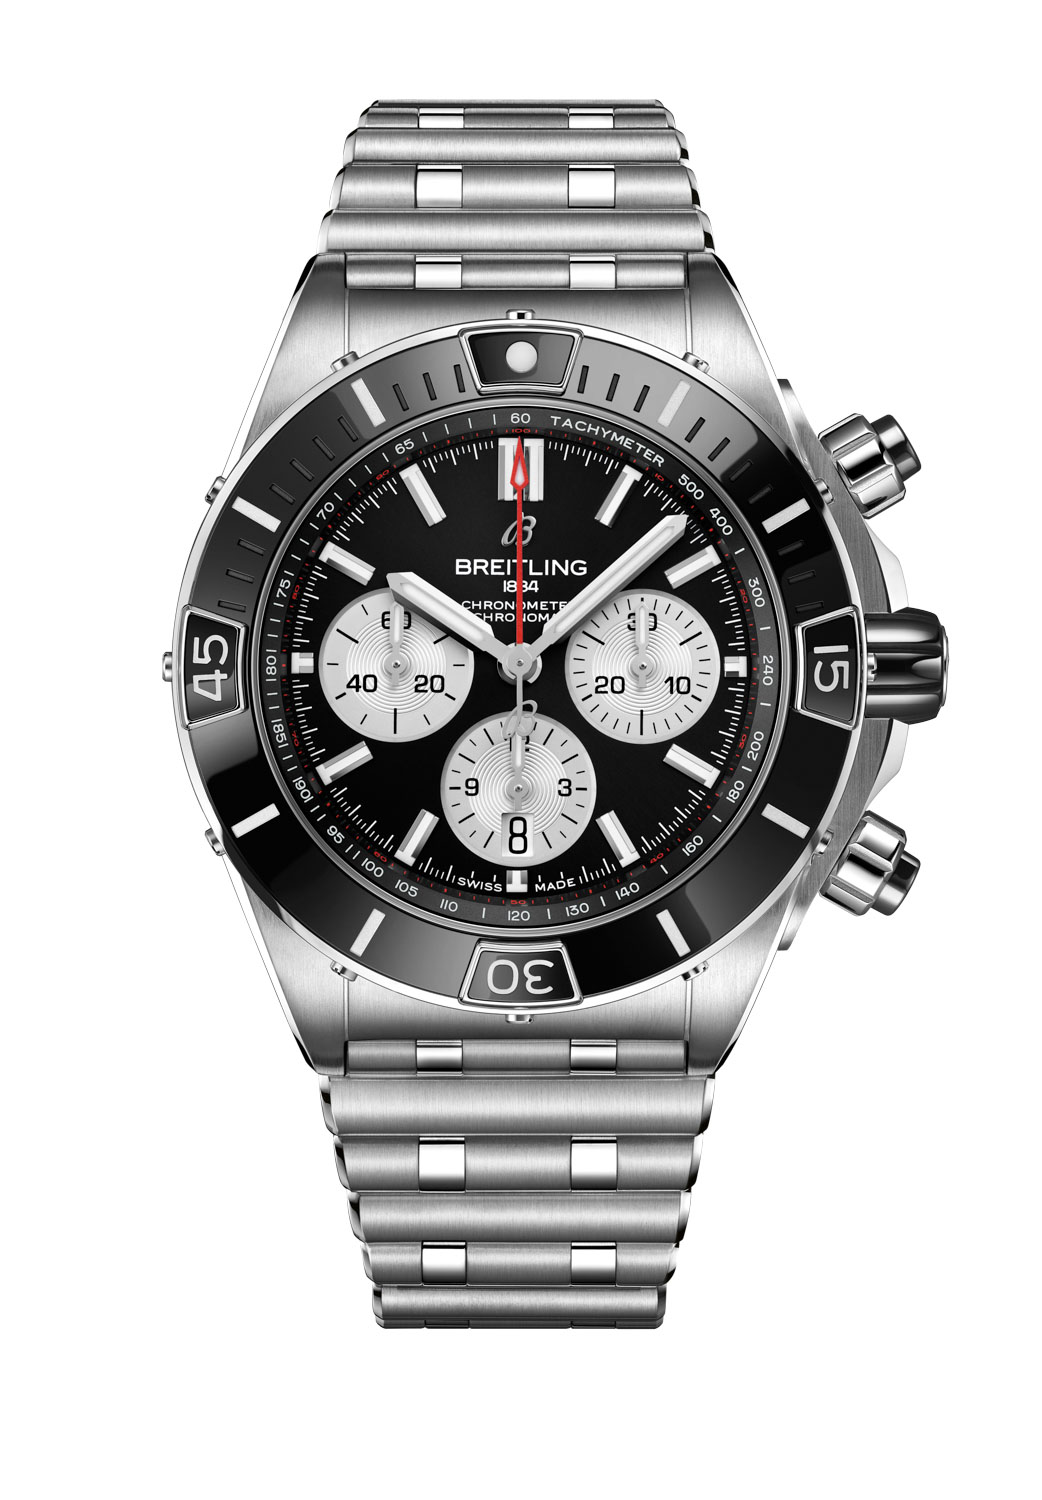 The Super Chronomat B01 44 in stainless steel fitted on a Rouleaux bracelet without the UTC module